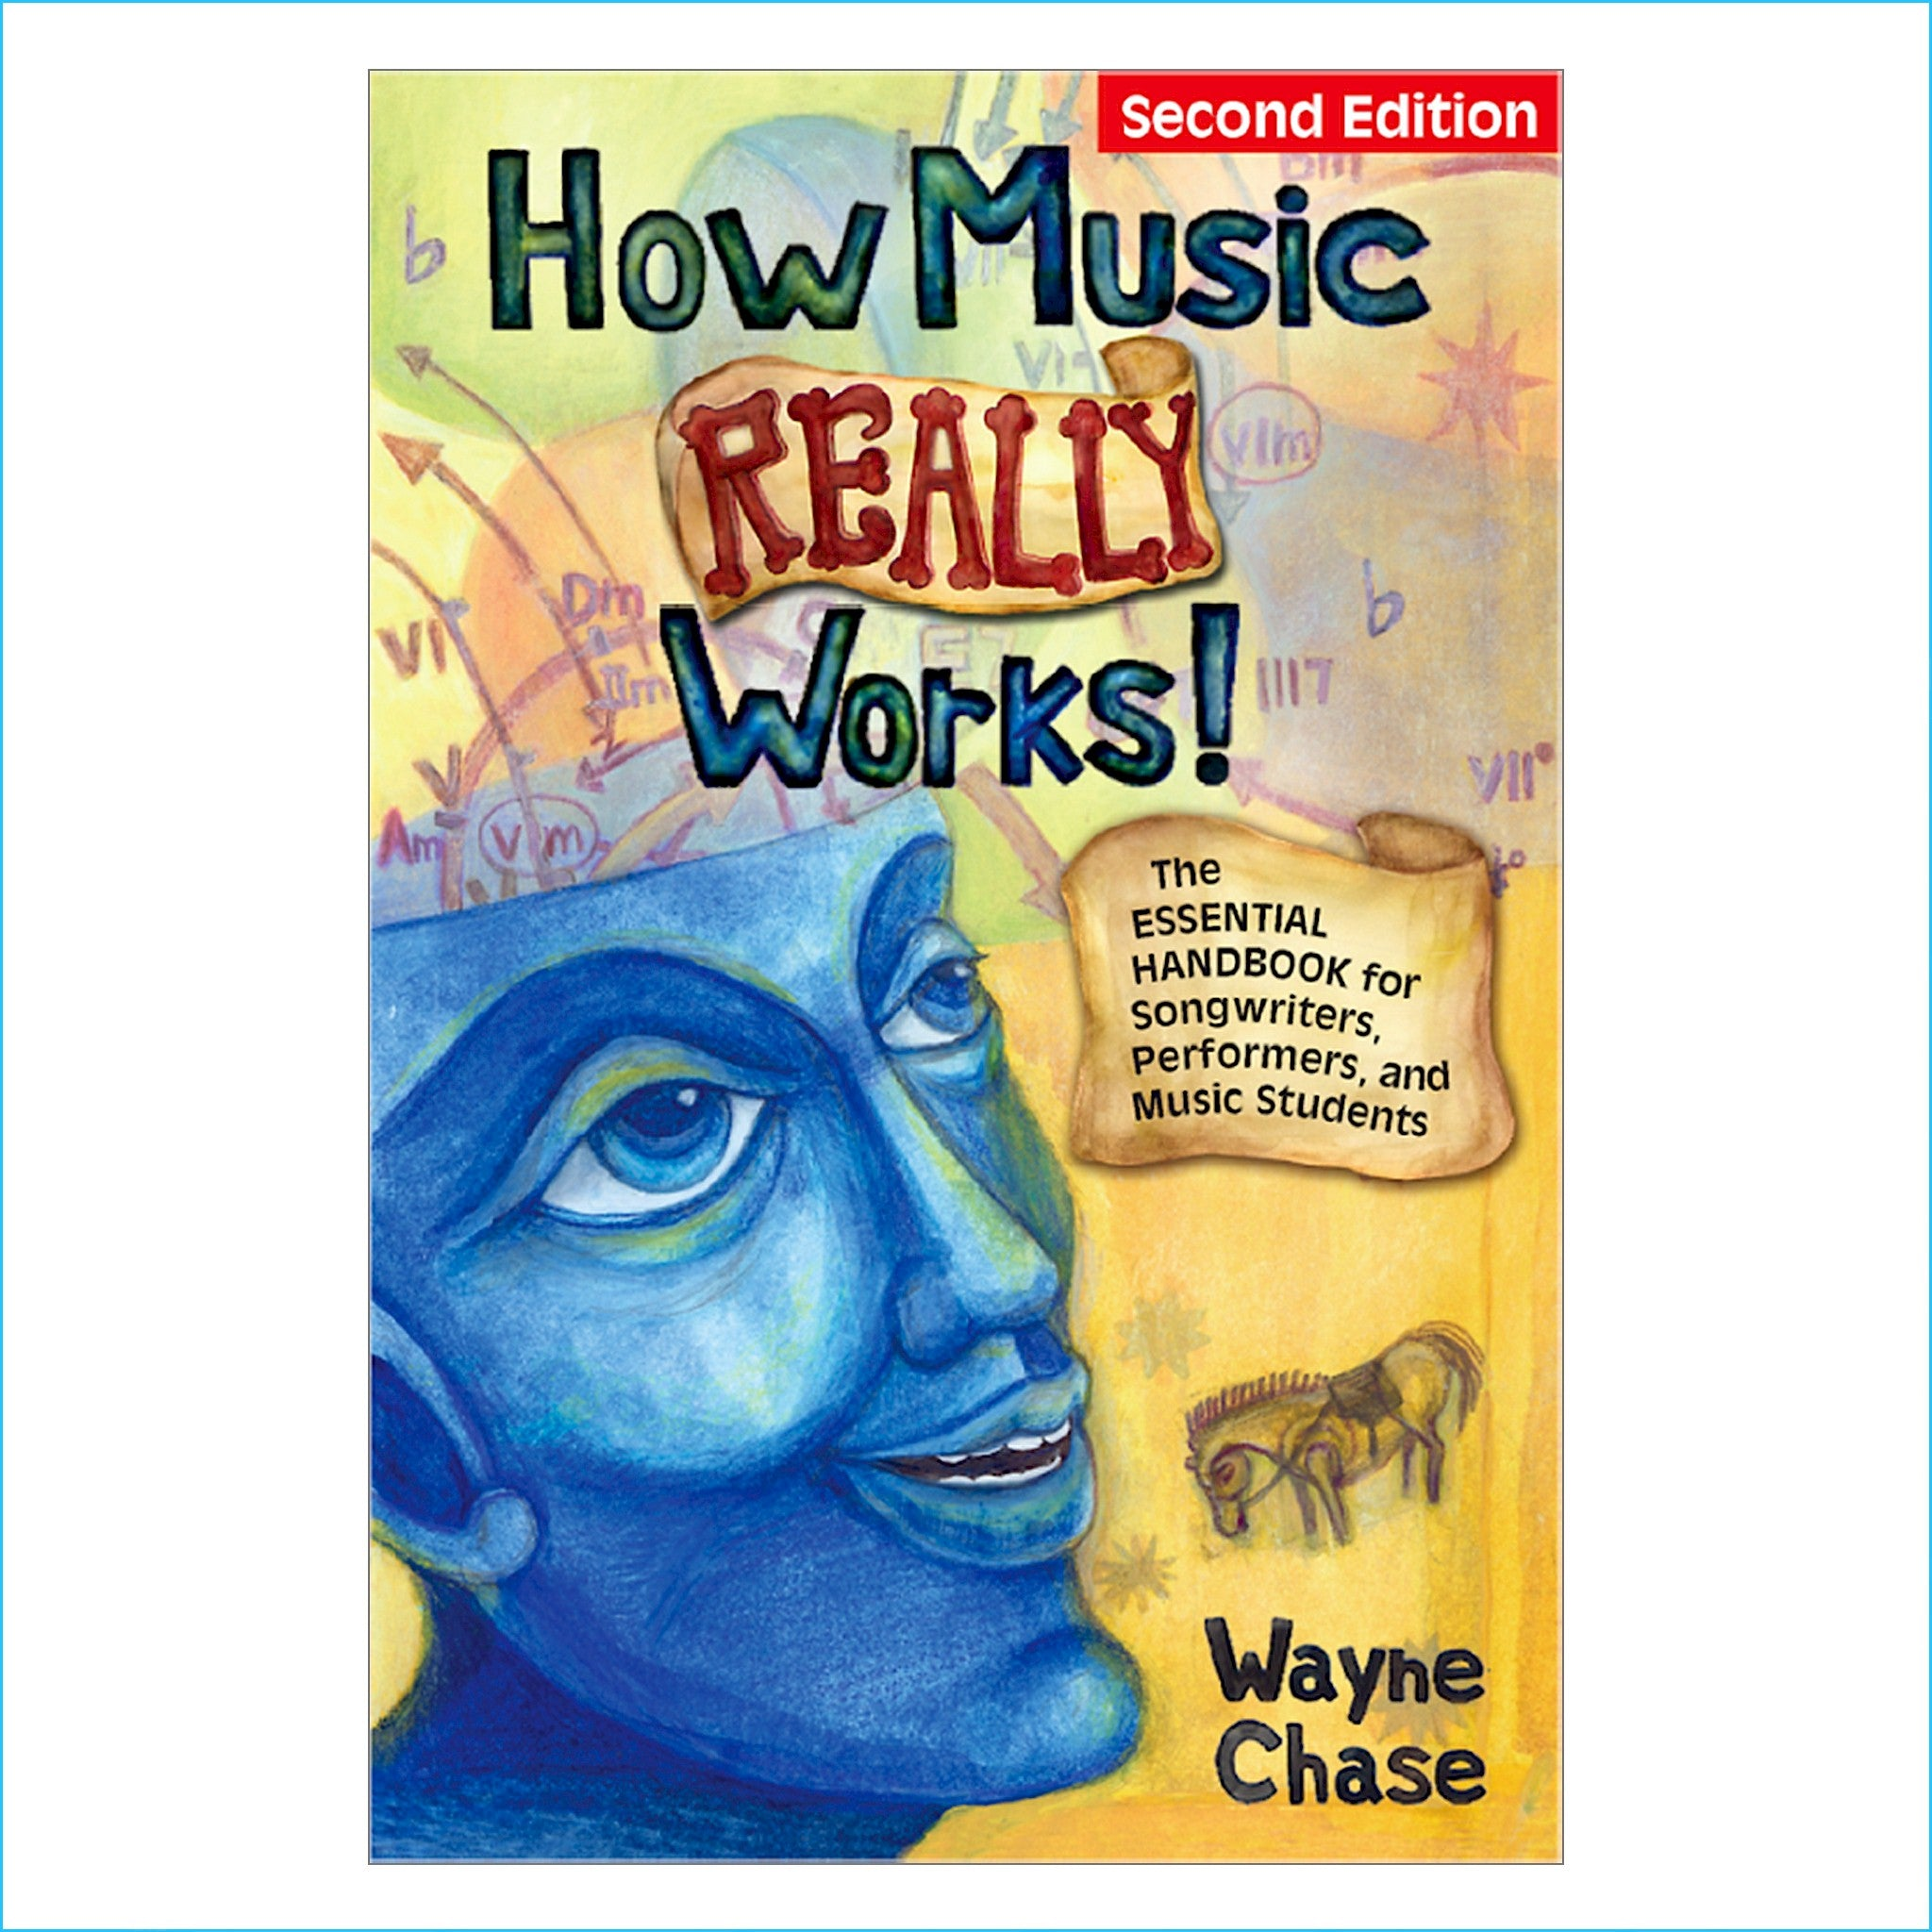 How Music Really Works pdf – Roedy Black